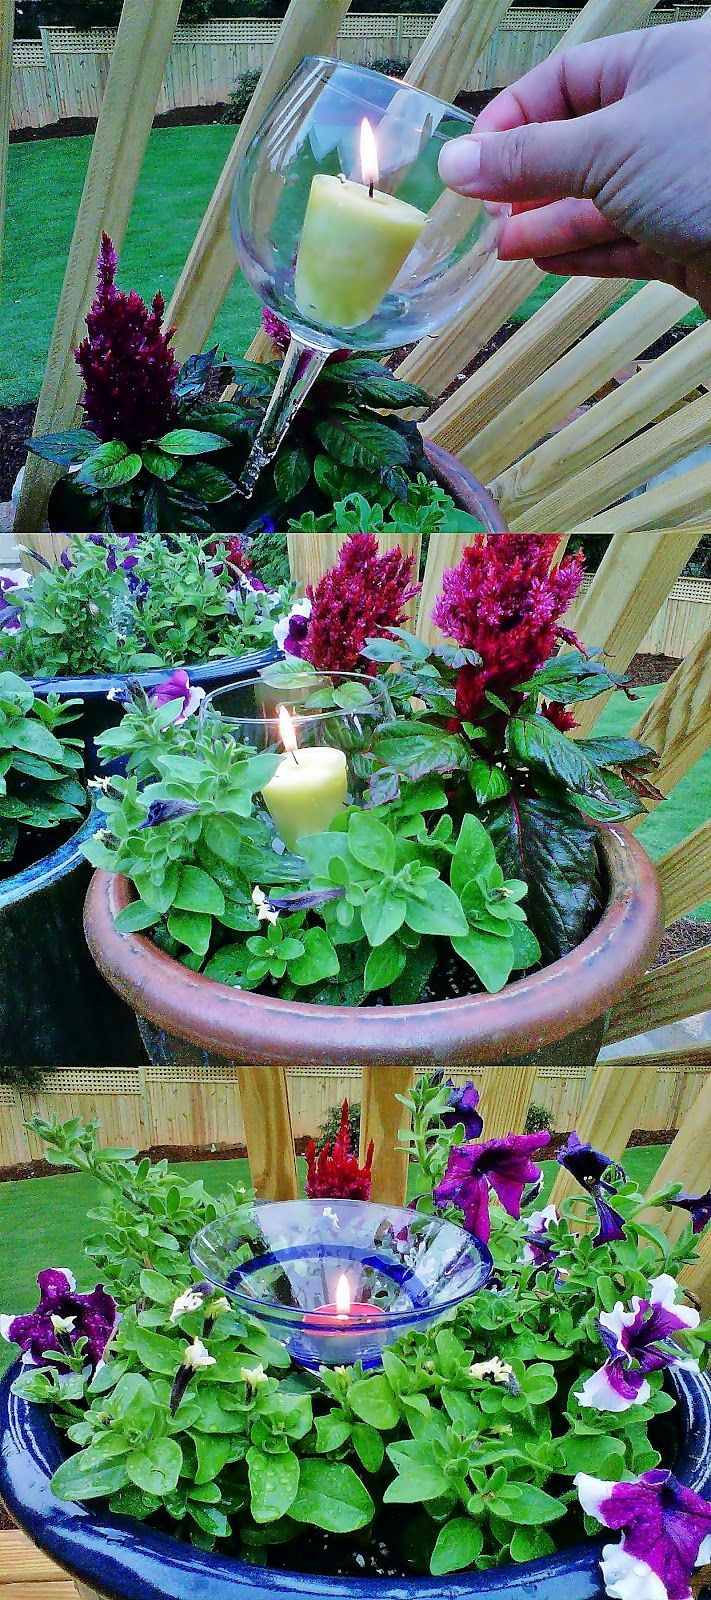 Repurpose stemware. Pop in a citronella candle and then put glass down in plant. Pretty at night and keeps bugs away!